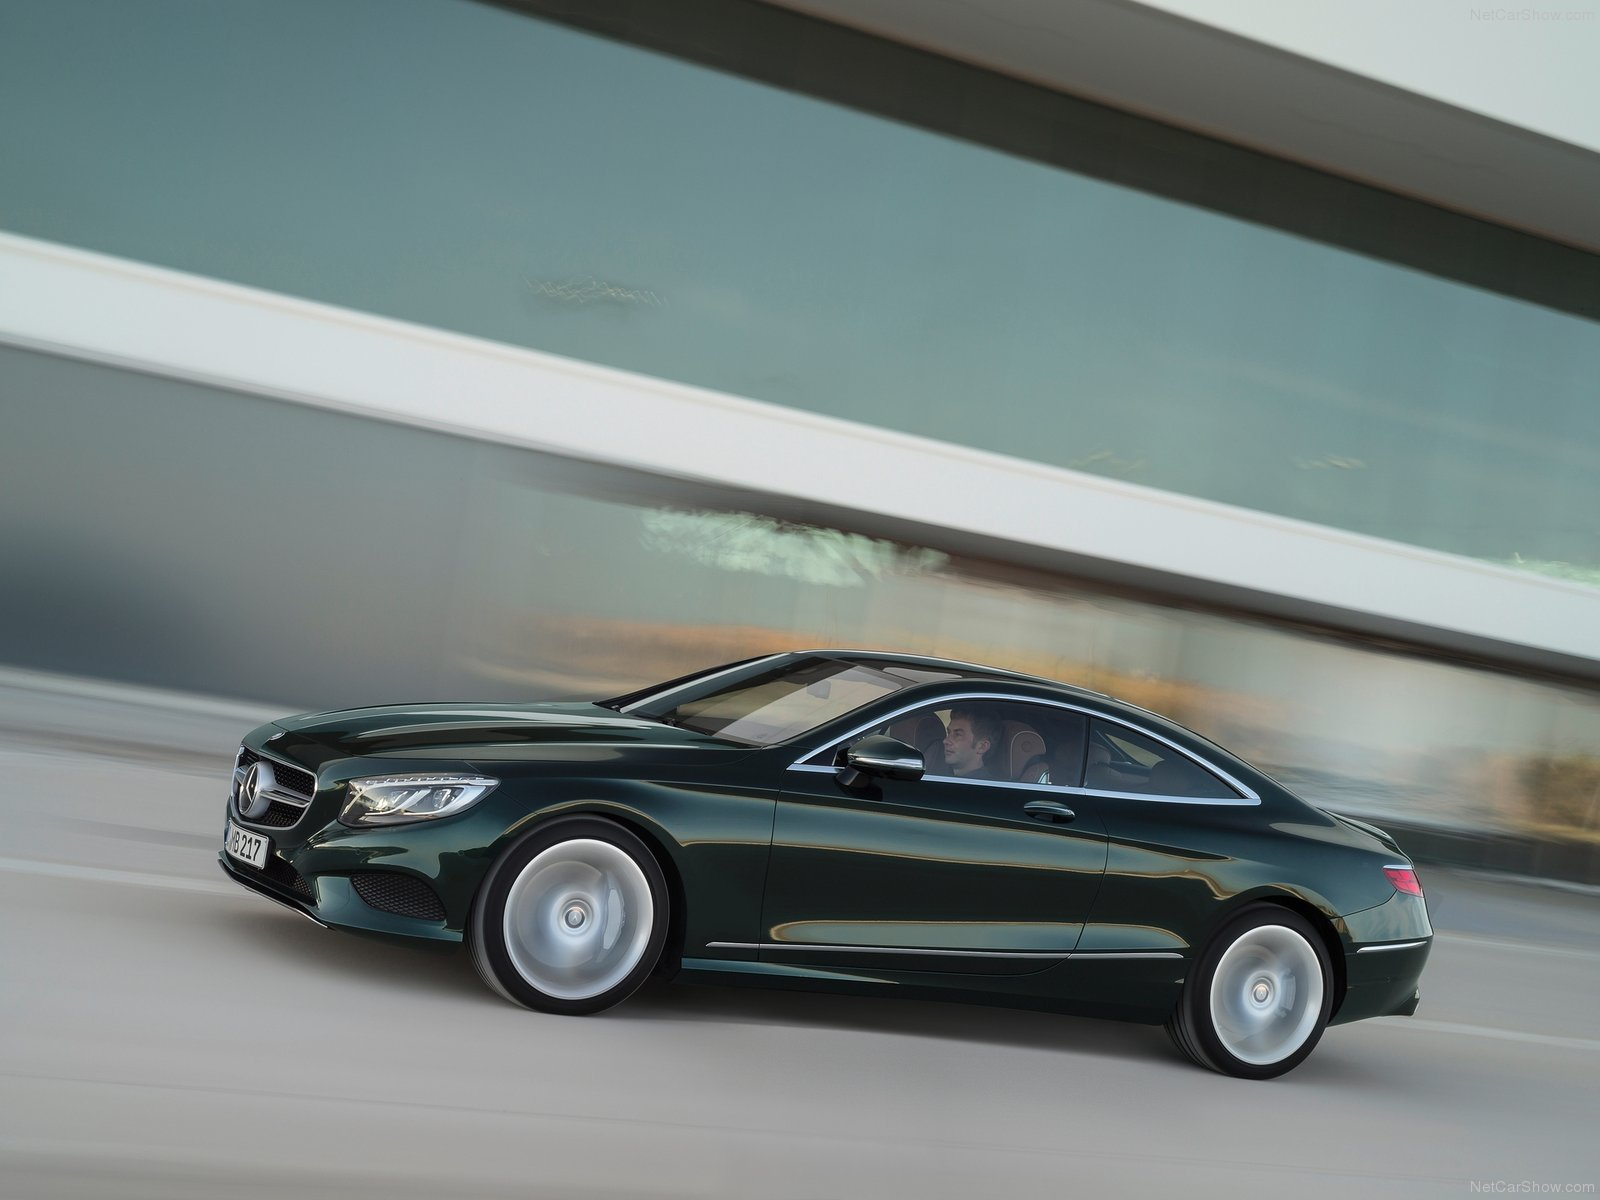 Mercedes-Benz S-Class Coupe photo 125682